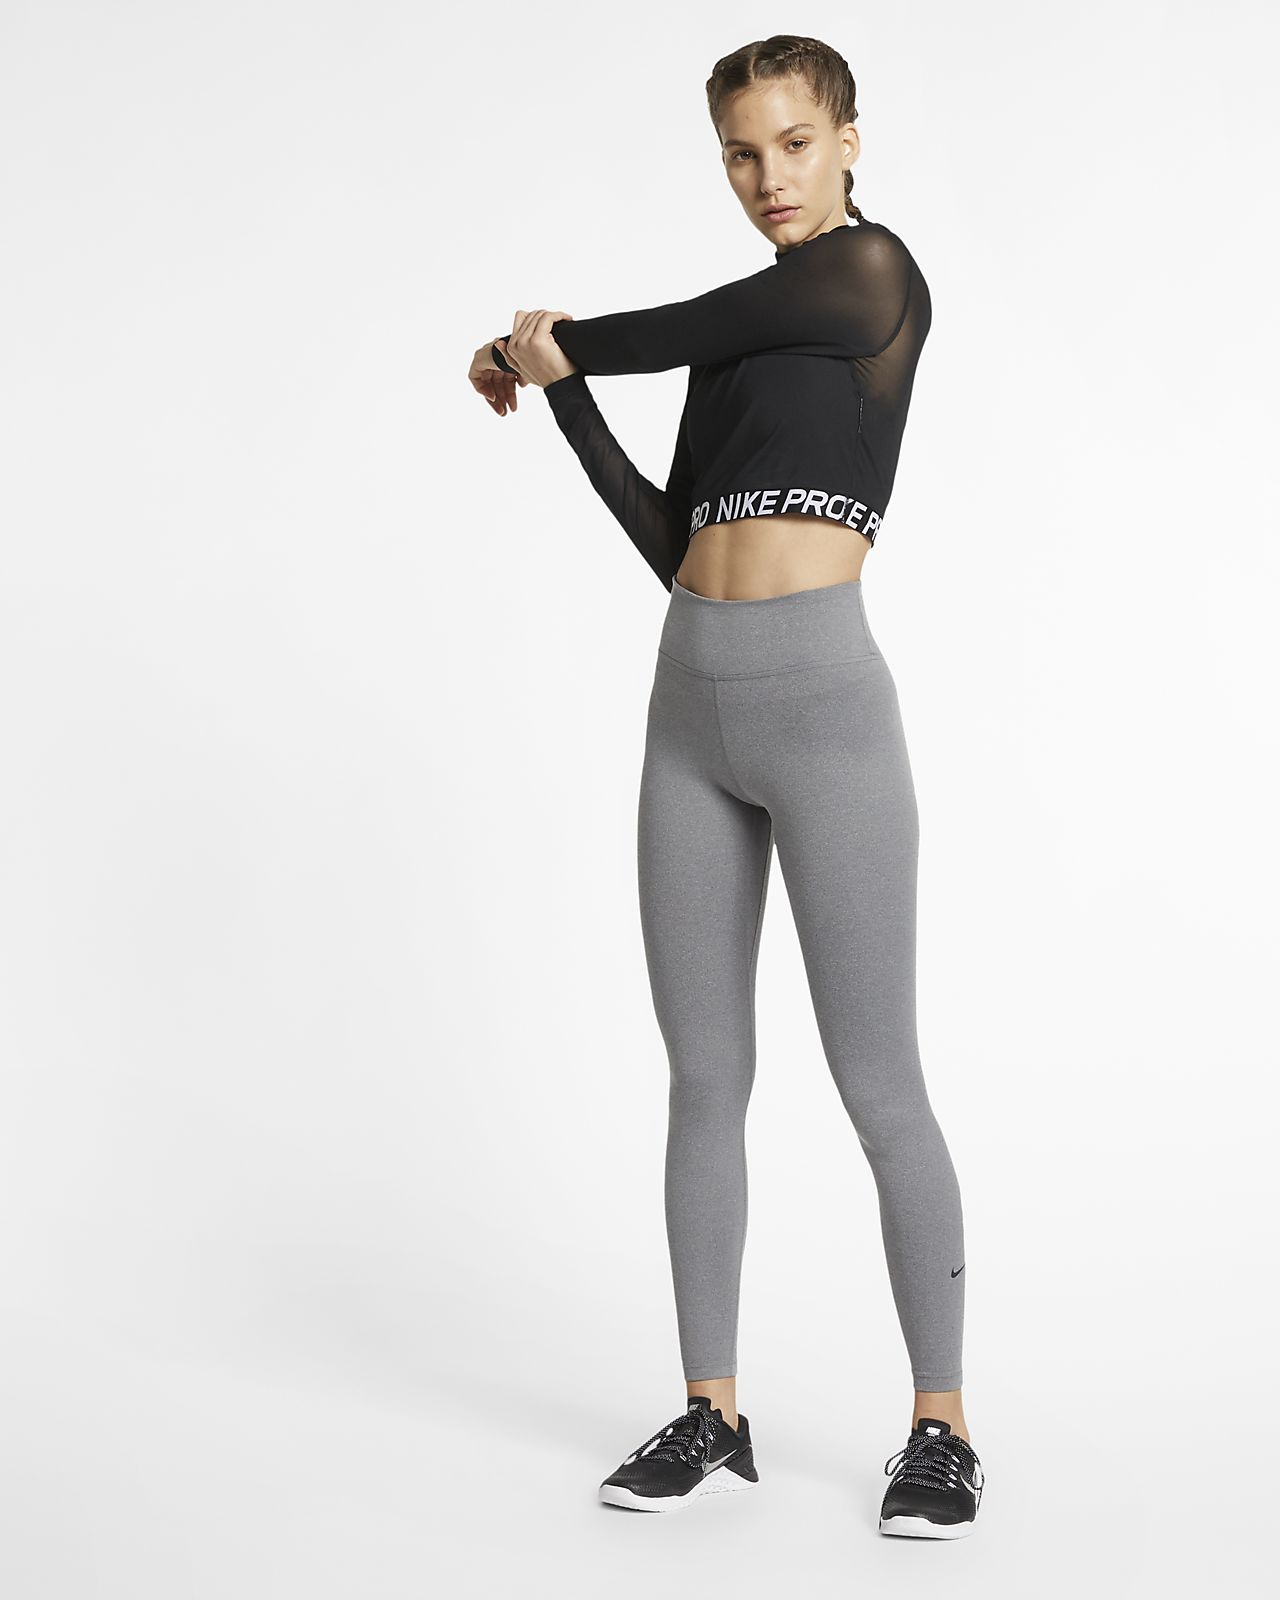 344736f2bb4901 Nike Pro Women s Long-Sleeve Top. Nike.com AU